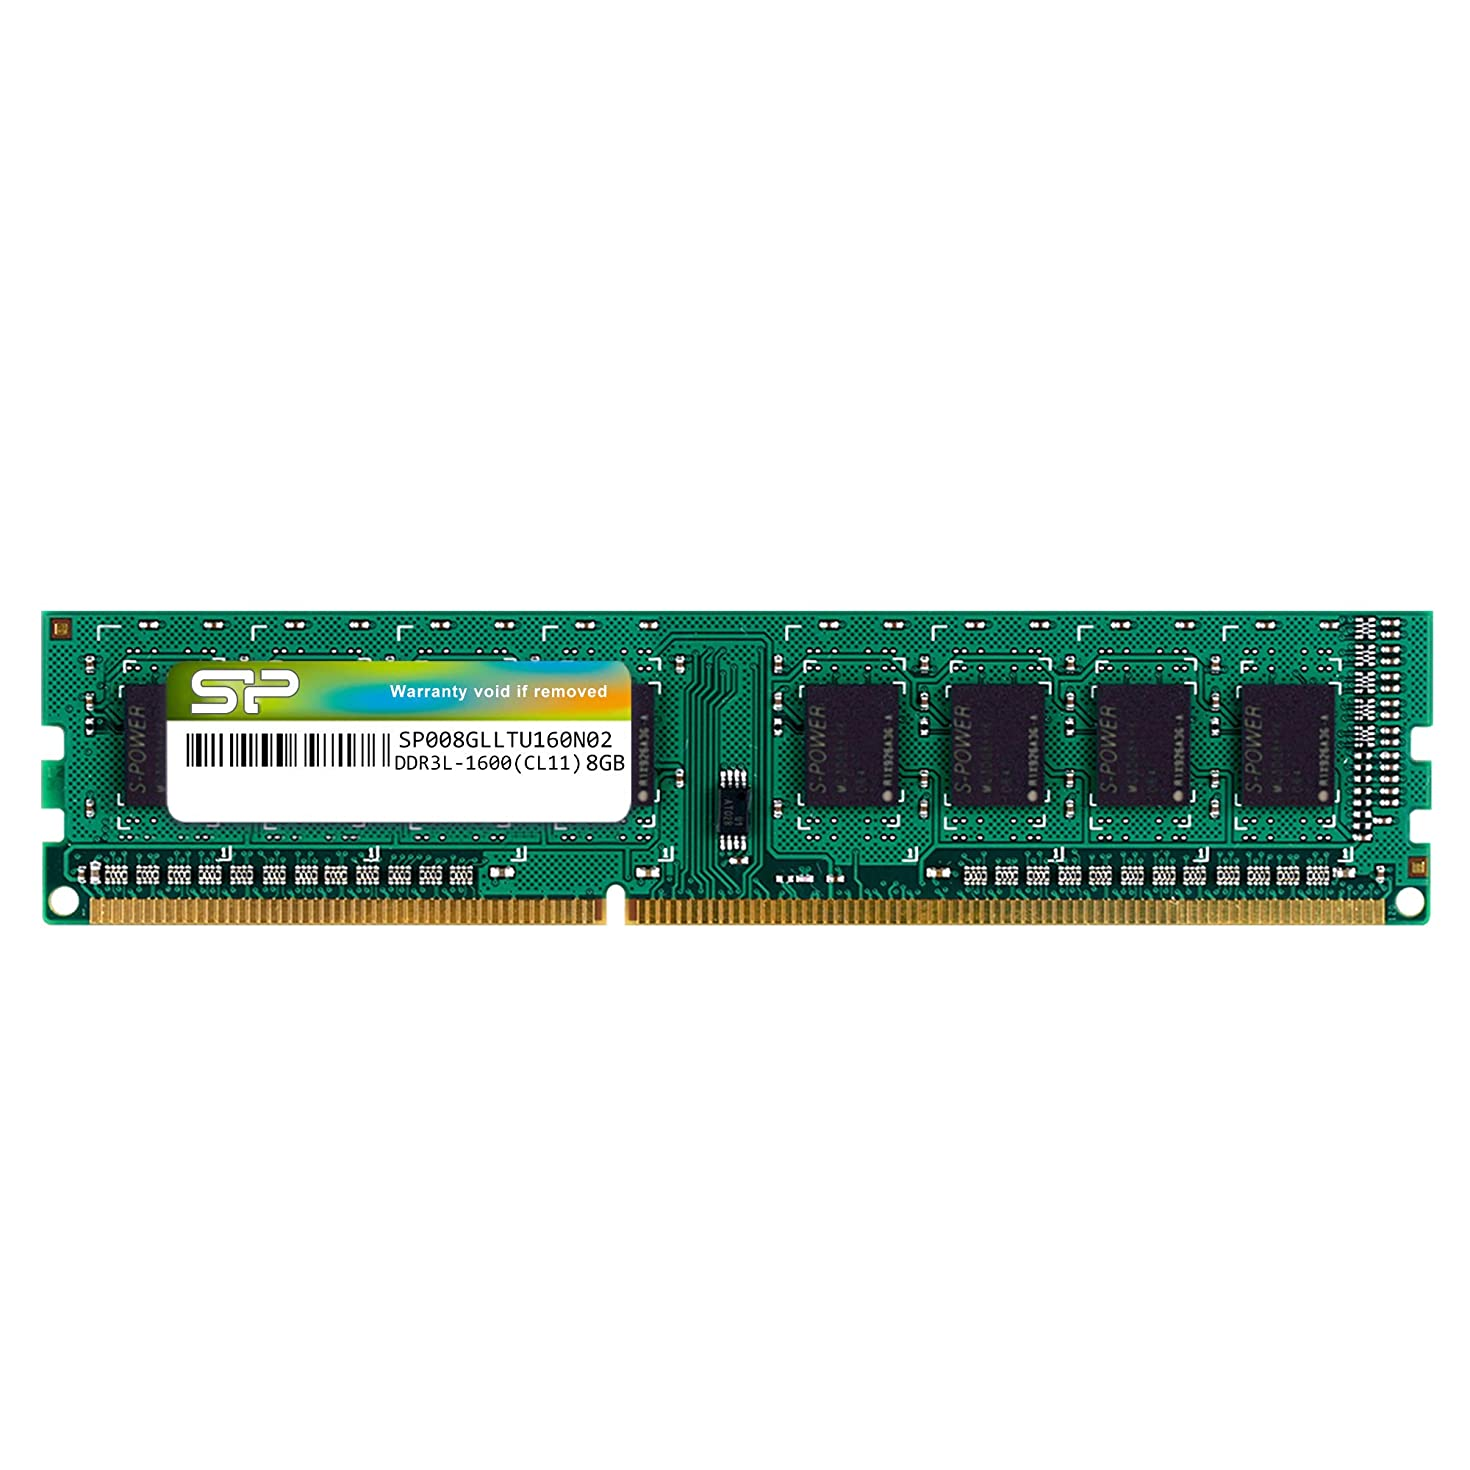 Silicon Power 8GB-DDR3L-RAM-1600MHz (PC3 12800) 240 pin CL11 1.35V Non ECC Unbuffered UDIMM-Desktop Memory Module - Low Voltage and Power Saving